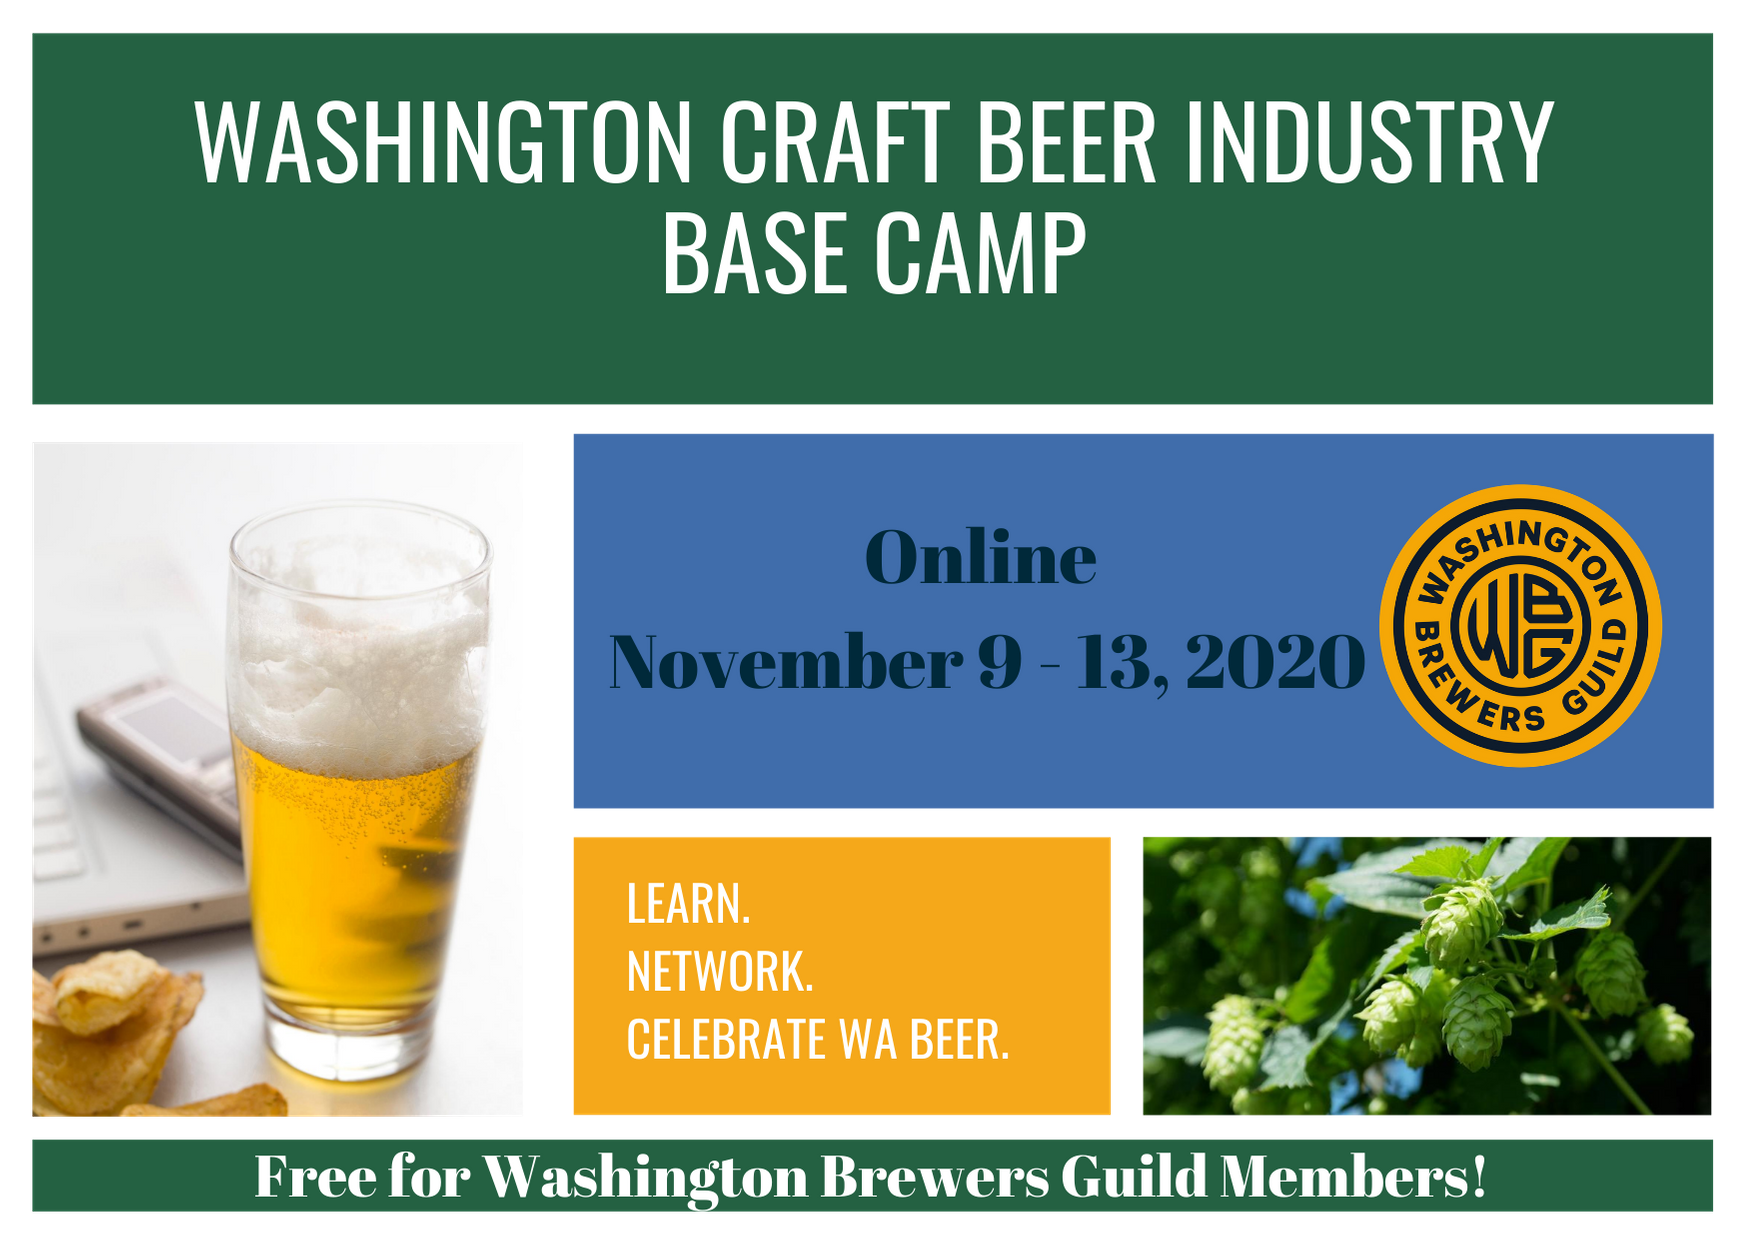 WA Craft Beer Industry Base Camp Crowdcast PNG high quality